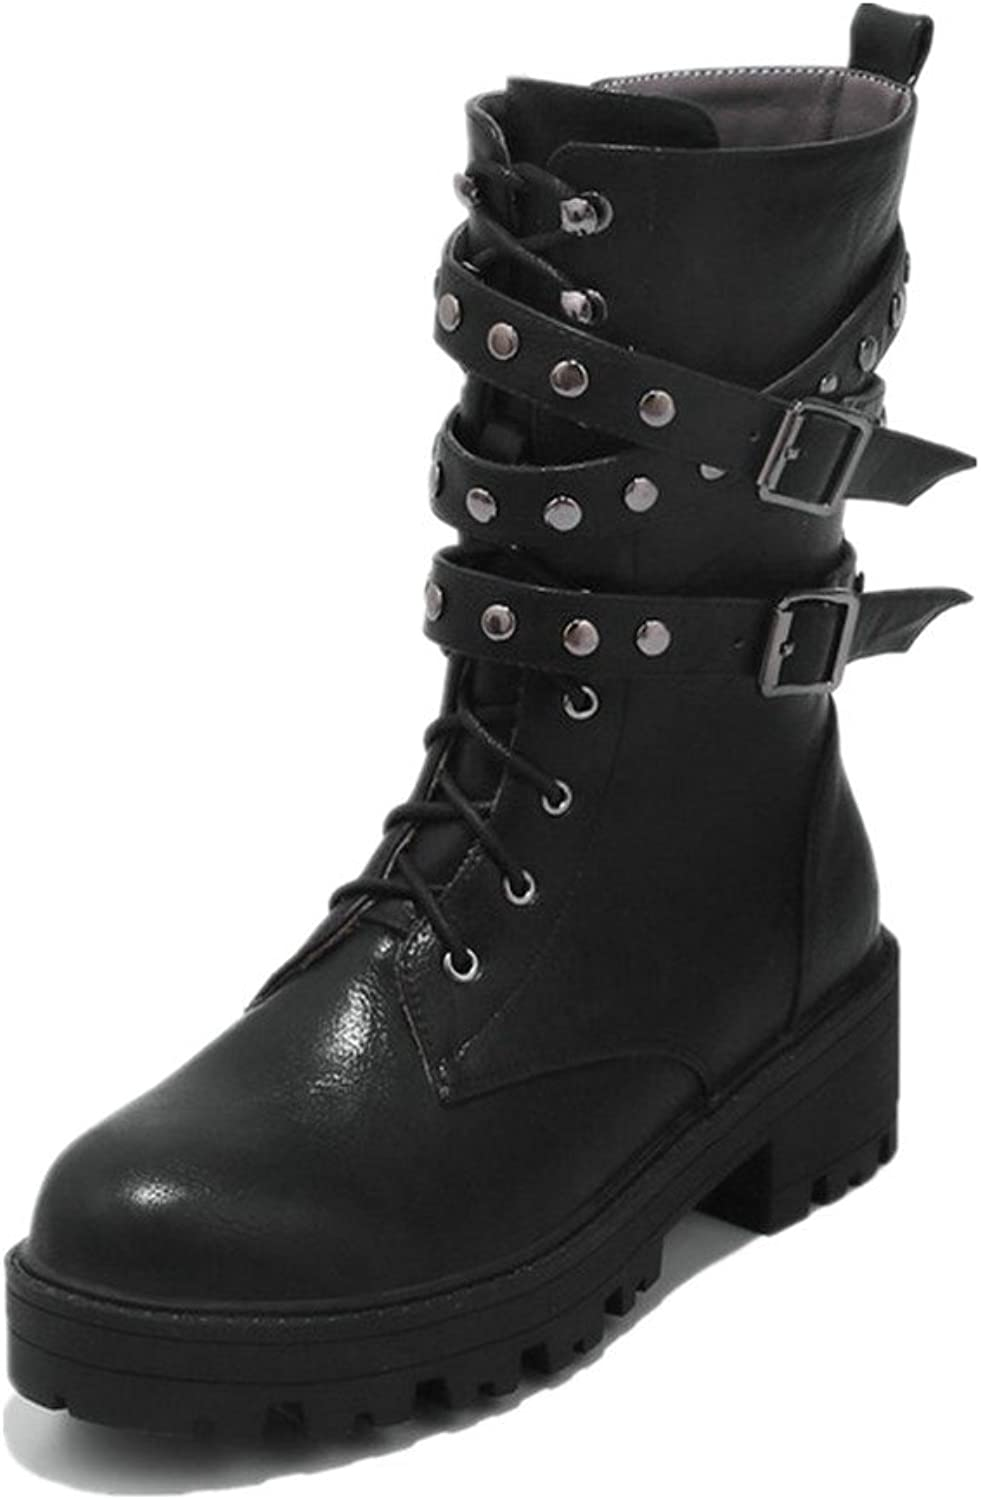 Women Platform Boots Lace Up Low heel Mid Calf Plus Size Boots Leather Studded Rivets Buckle Boots